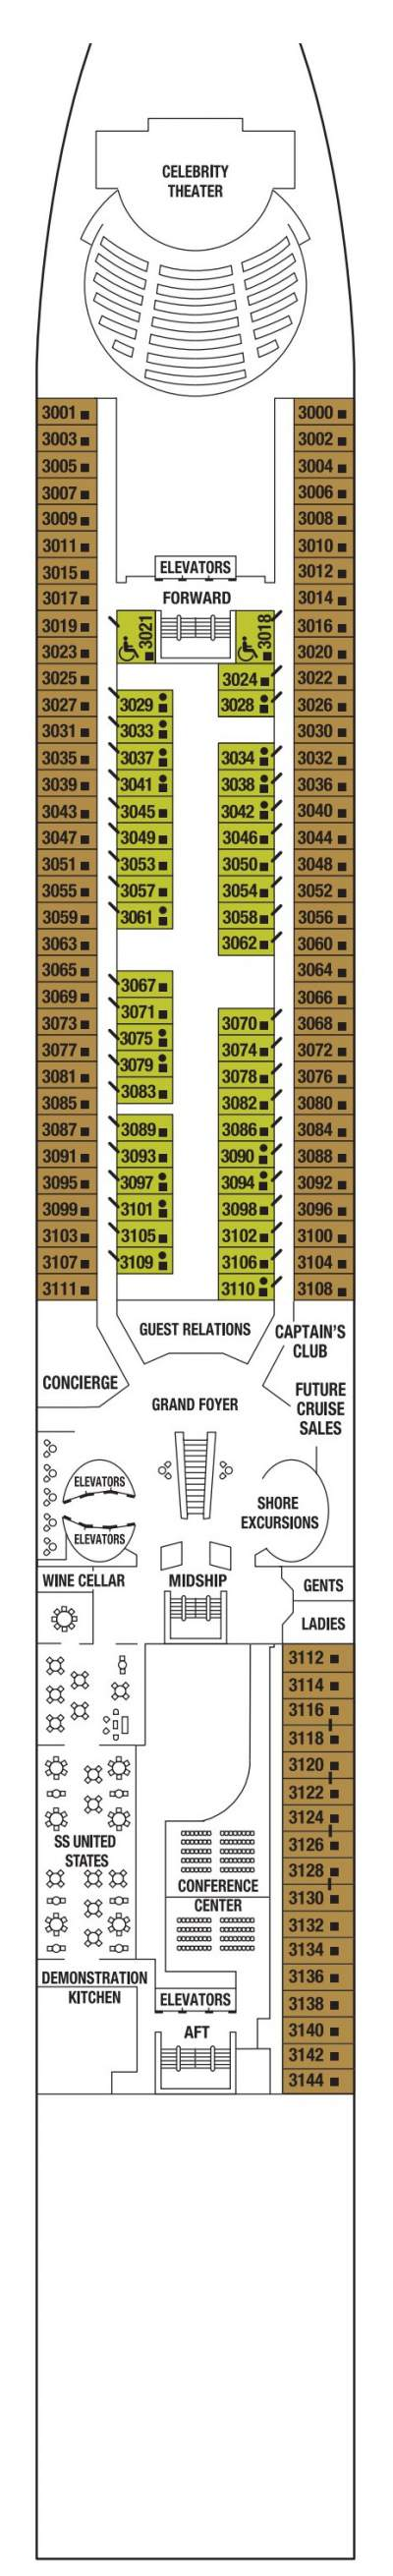 Celebrity Millennium Plaza Deck  layout